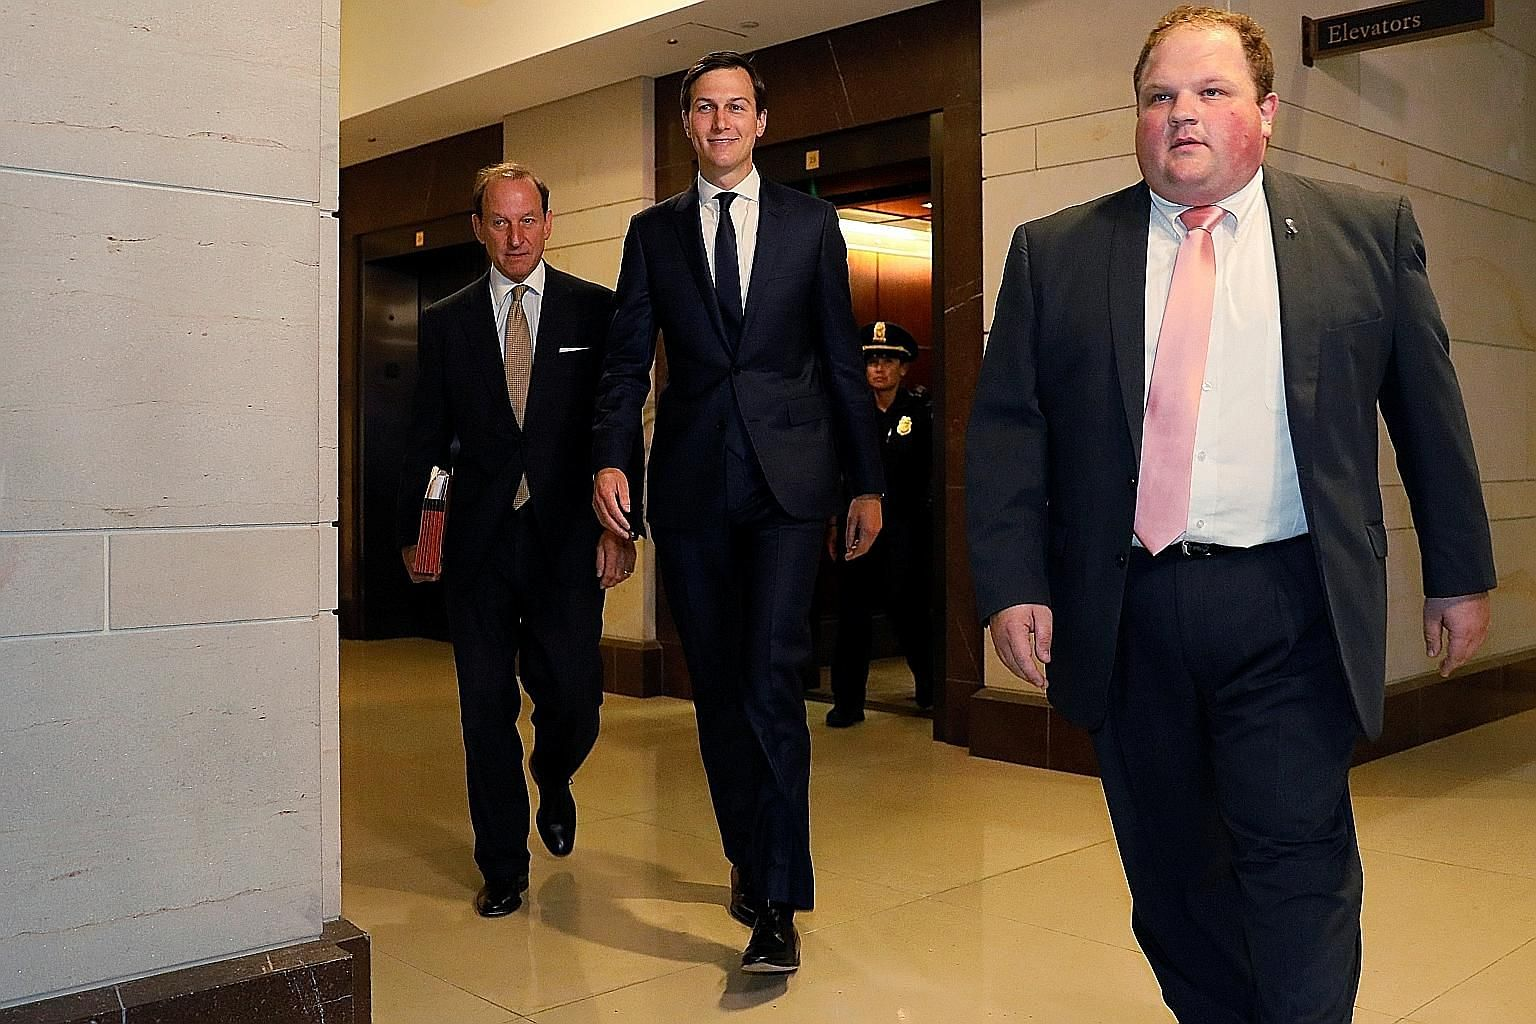 Mr Jared Kushner (centre), with his attorney Abbe Lowell (left), arriving for a House Intelligence Committee meeting on Capitol Hill yesterday.